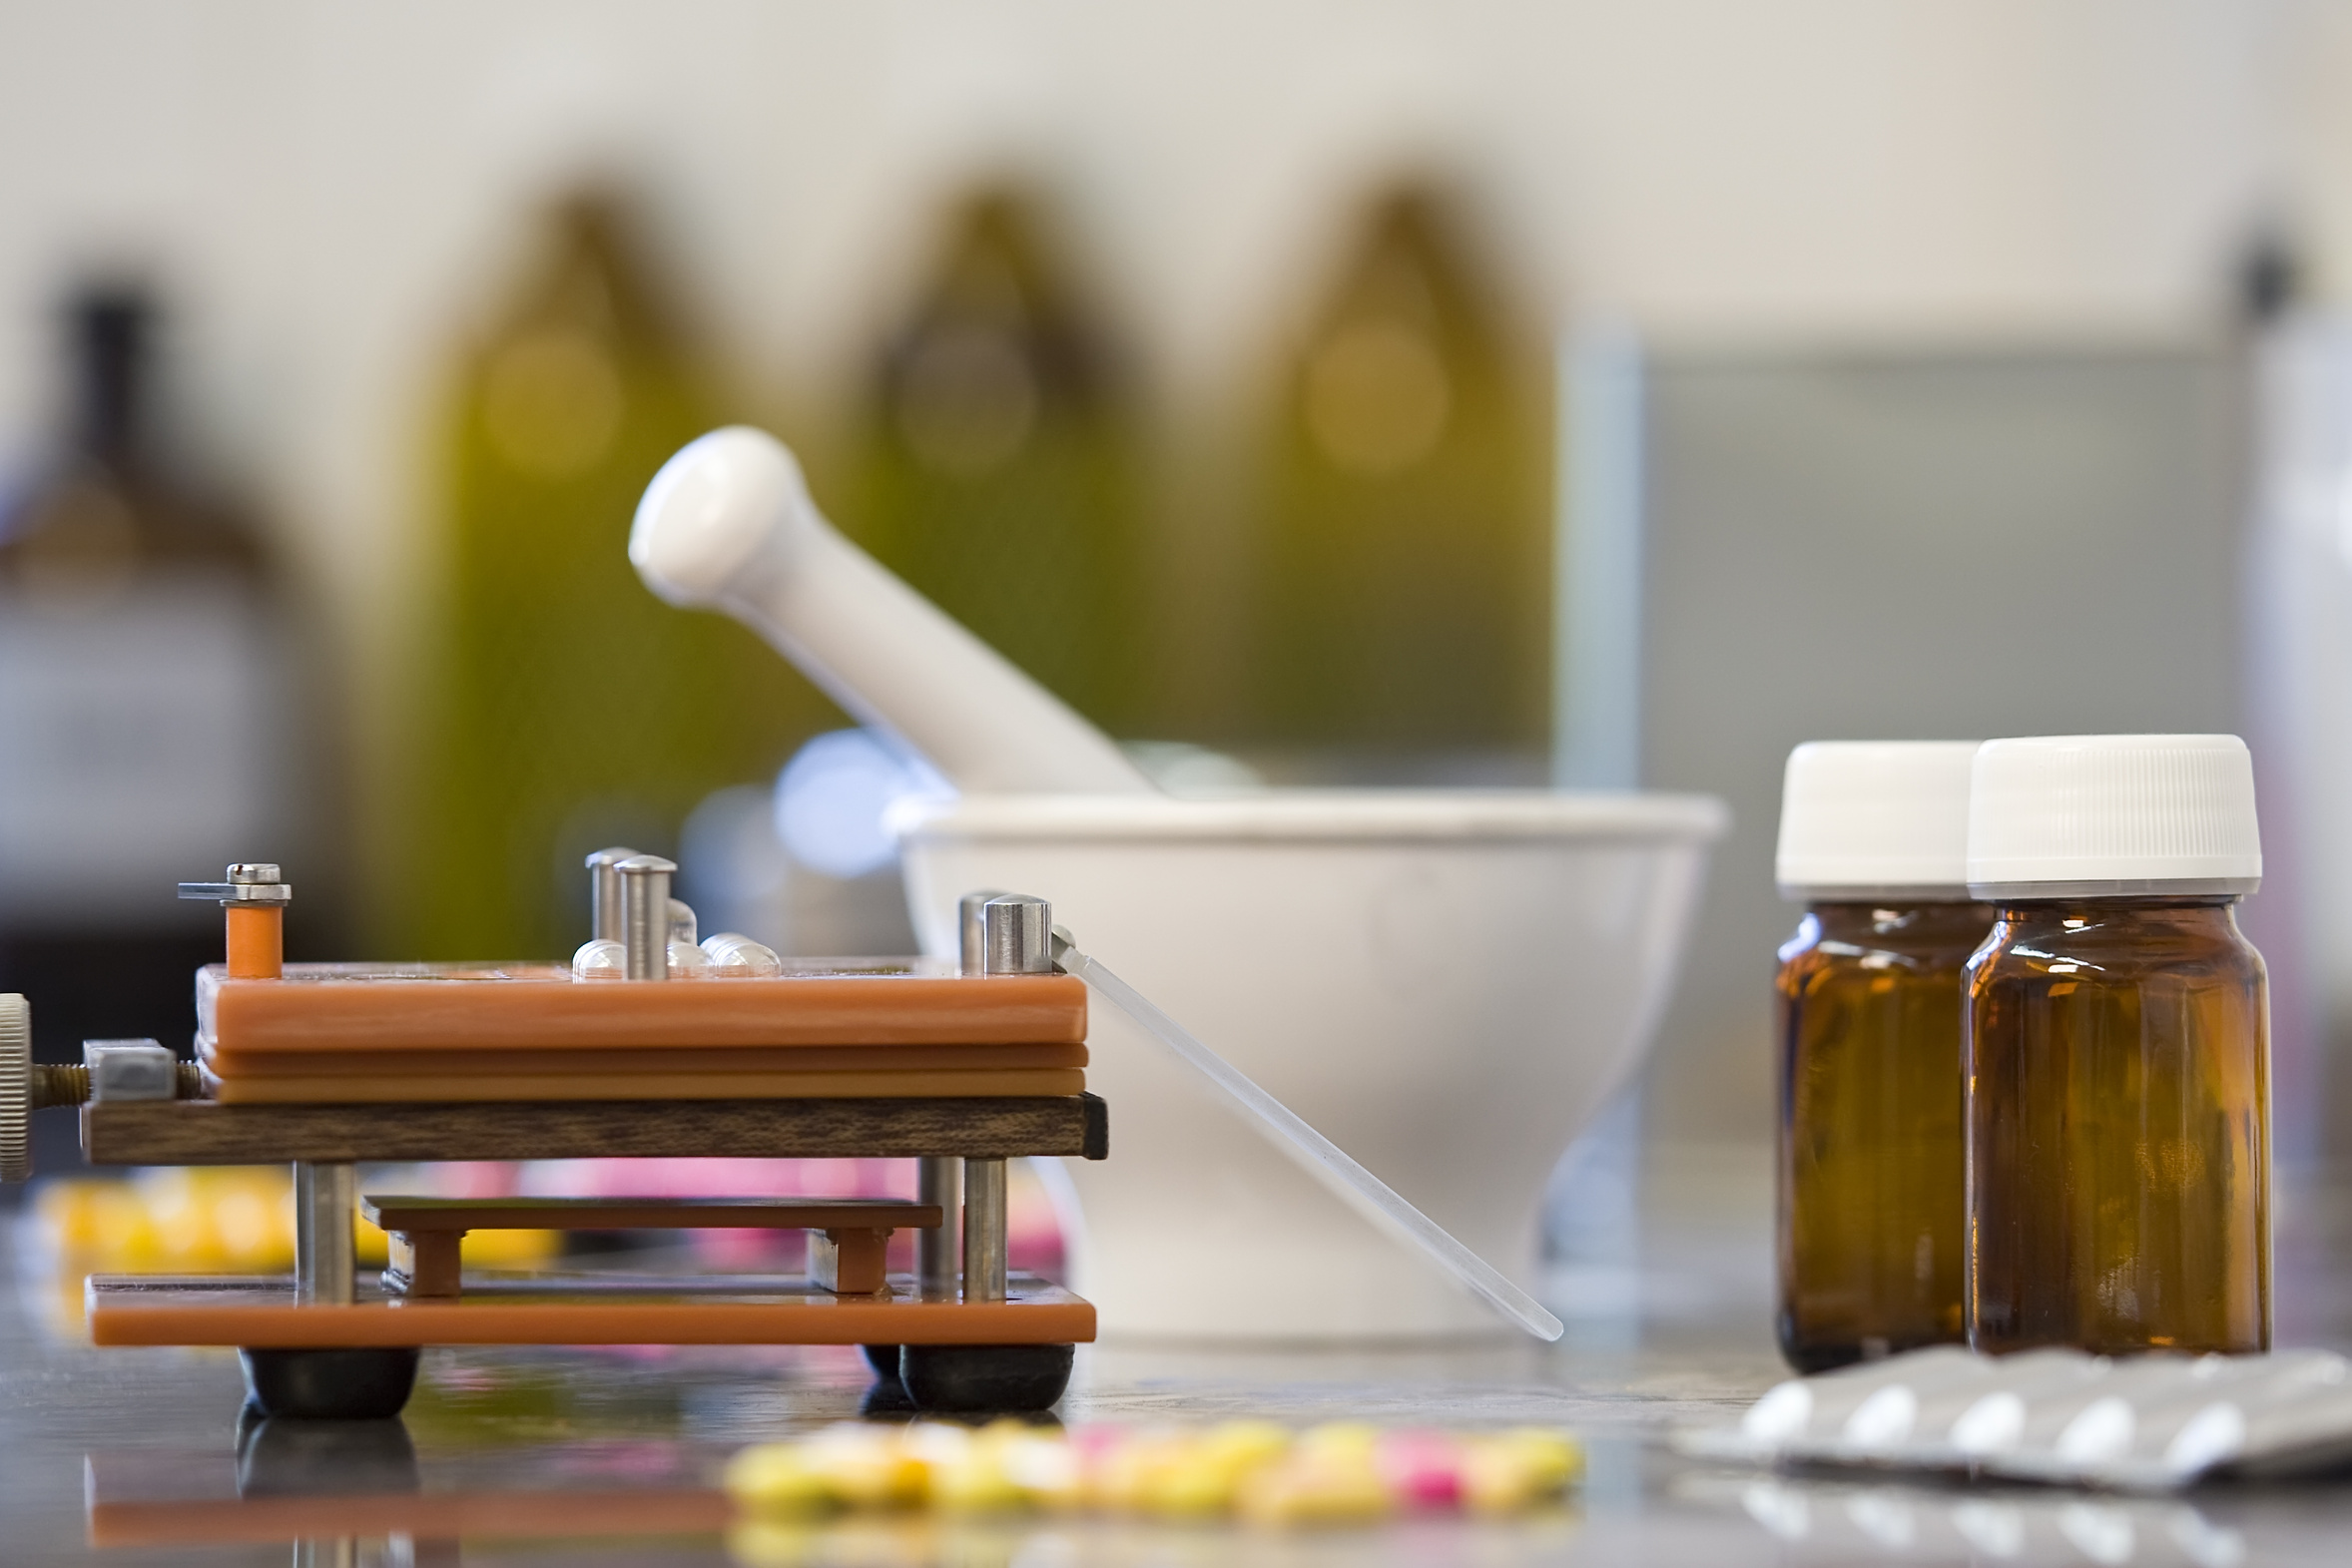 Pharmacy Compounding.jpg (2356×1571)